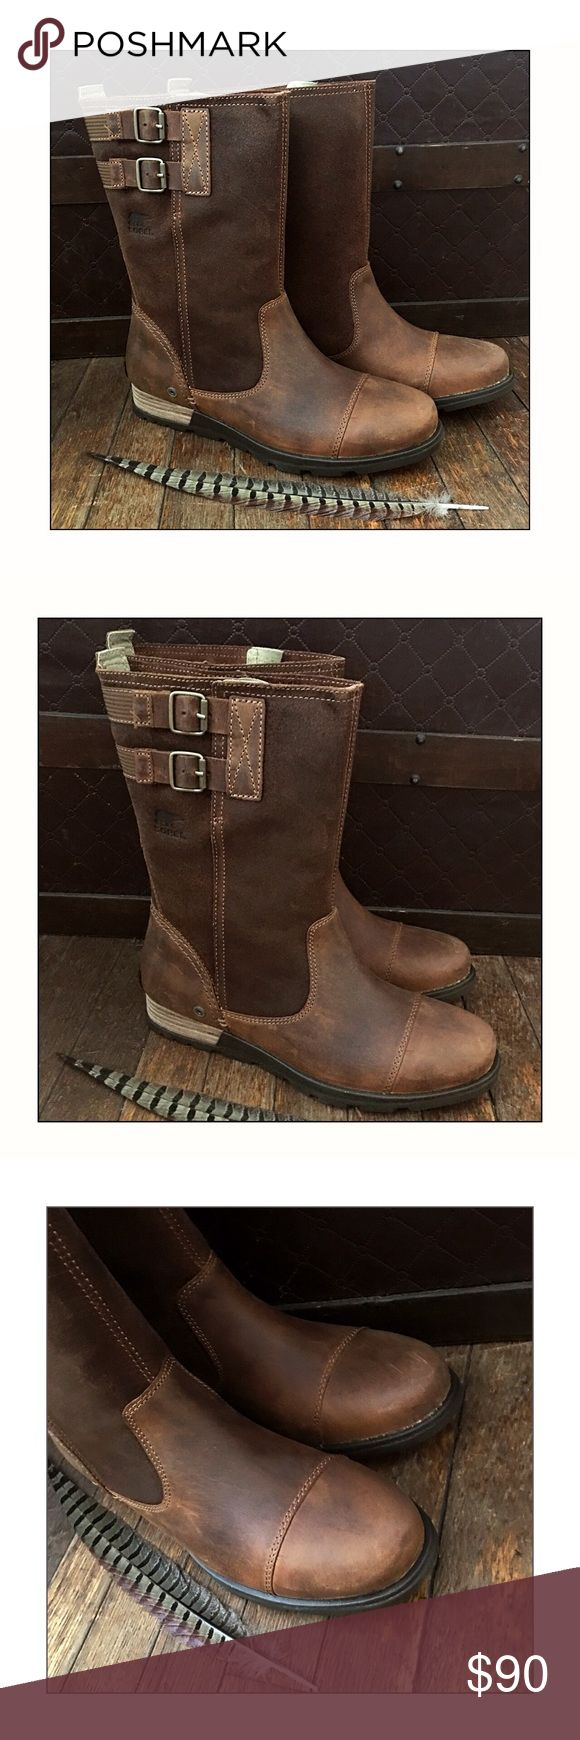 ✨Sorel 'Major' Waterproof Pull-On Boots✨ ✨Sorel 'Major' Waterproof Pull-On Boots✨The buttery, oiled suede and leather of the Major boot hints at inspirations cultivated from glittering fields of wheat to history rich iron forges, while the adjustable back strap provides a distinct military appearance✨Best Part Is that these Beauties are WATERPROOF✨Super Comfortable and not the least bit clunky, you can wear them all day long✨They Are Amazing✨Color is Grizzly Bear Tan✨NEW with Original…